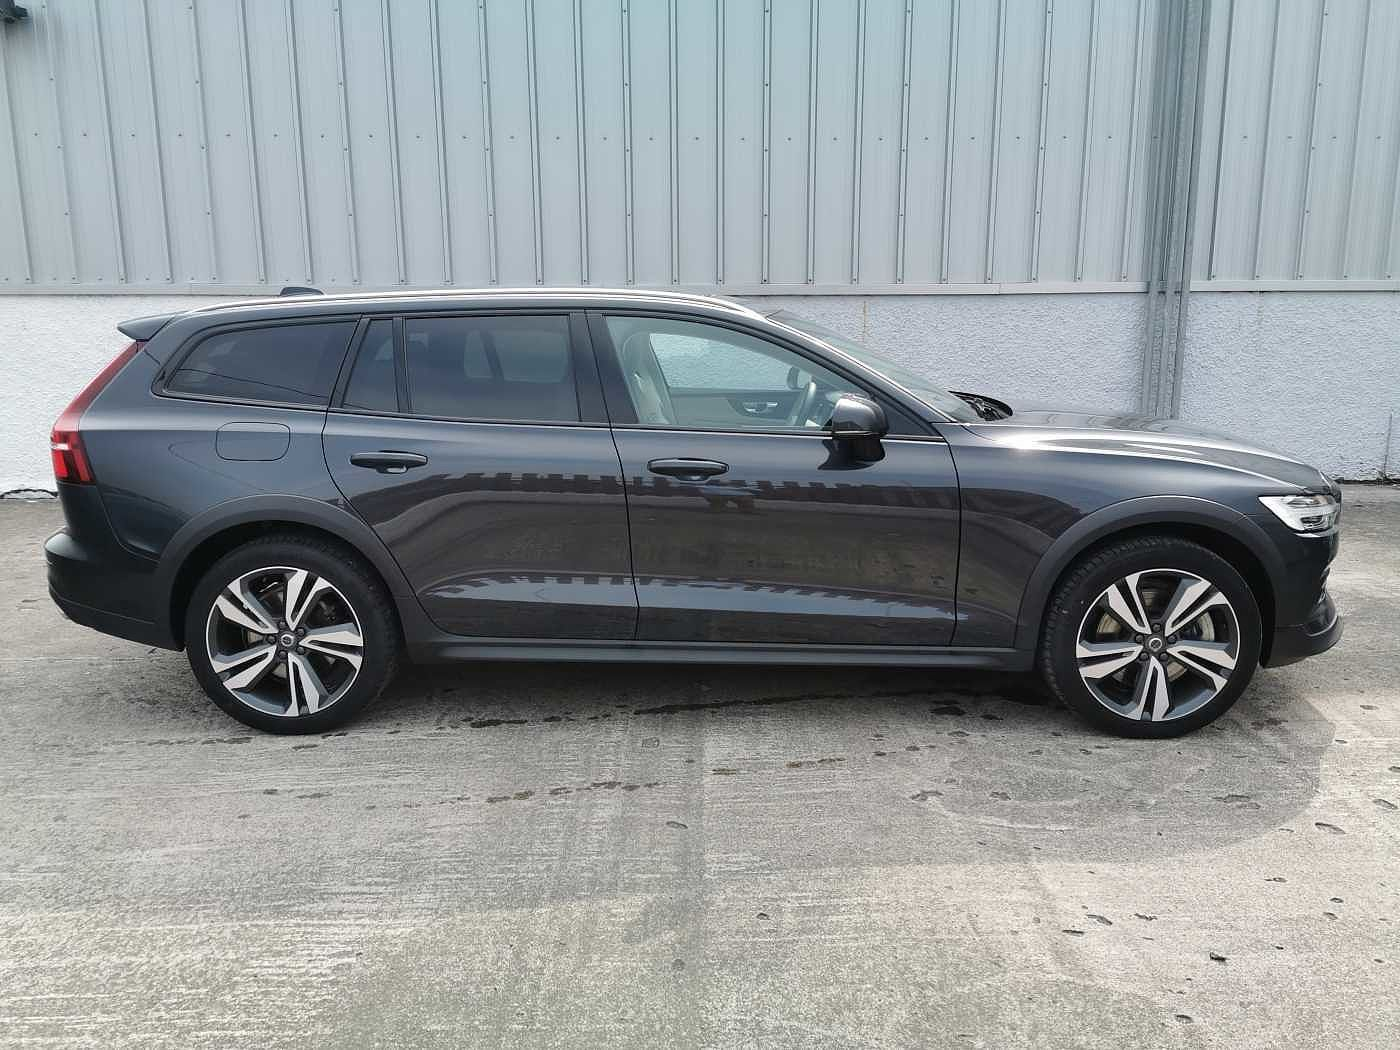 Volvo V60 Cross Country 2.0TD D4 (190bhp) AWD Cross Country s/s Estate